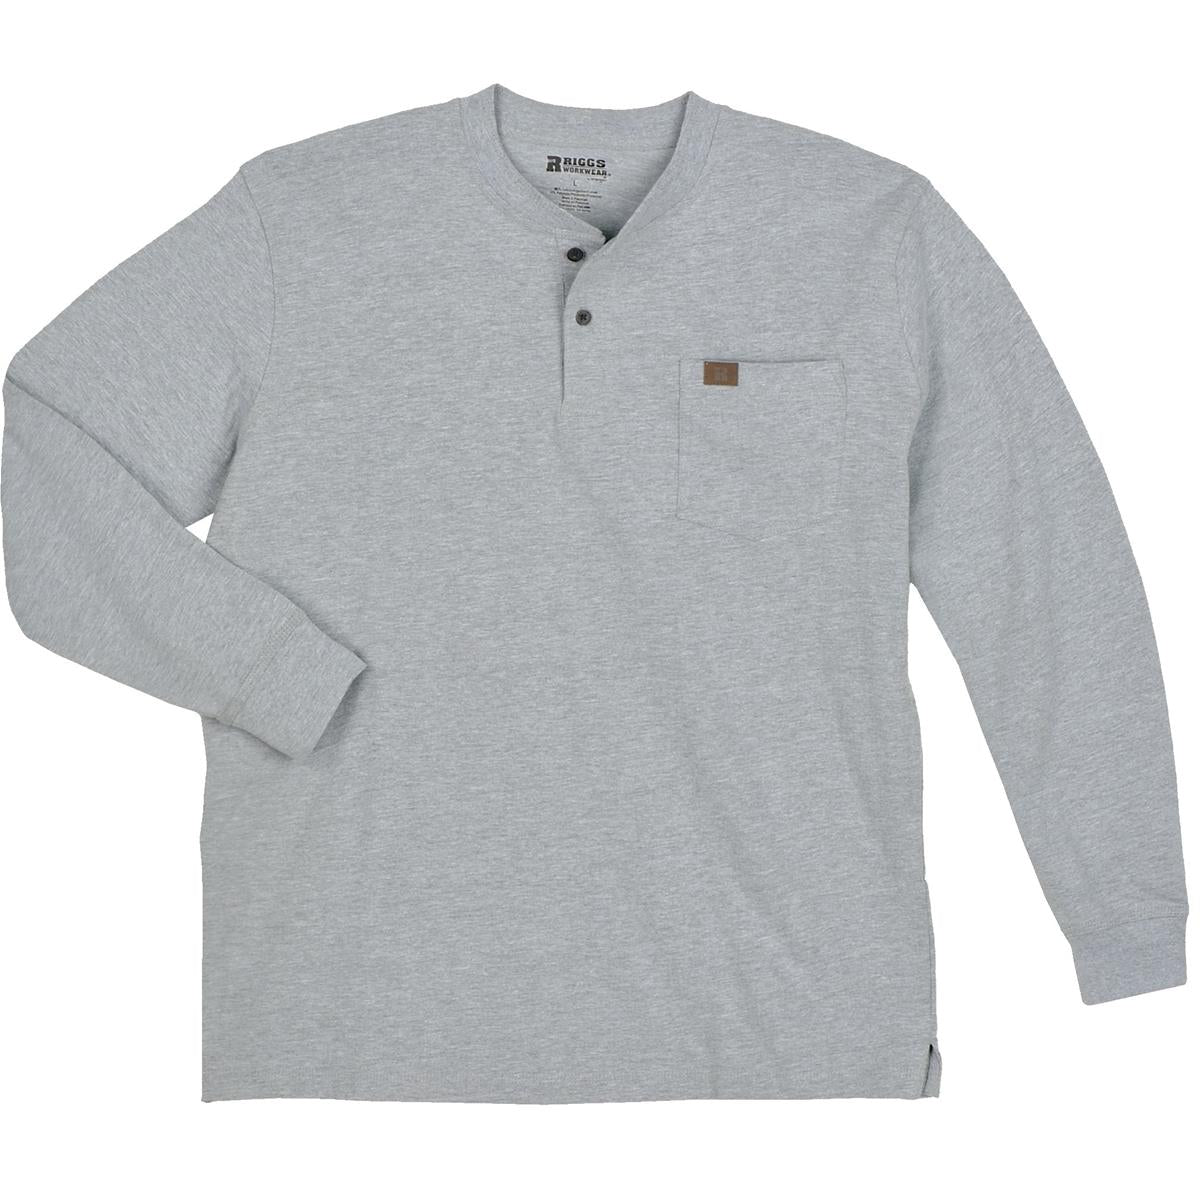 Riggs Workwear&reg by Wrangler&reg Long-Sleeve Henley Shirt